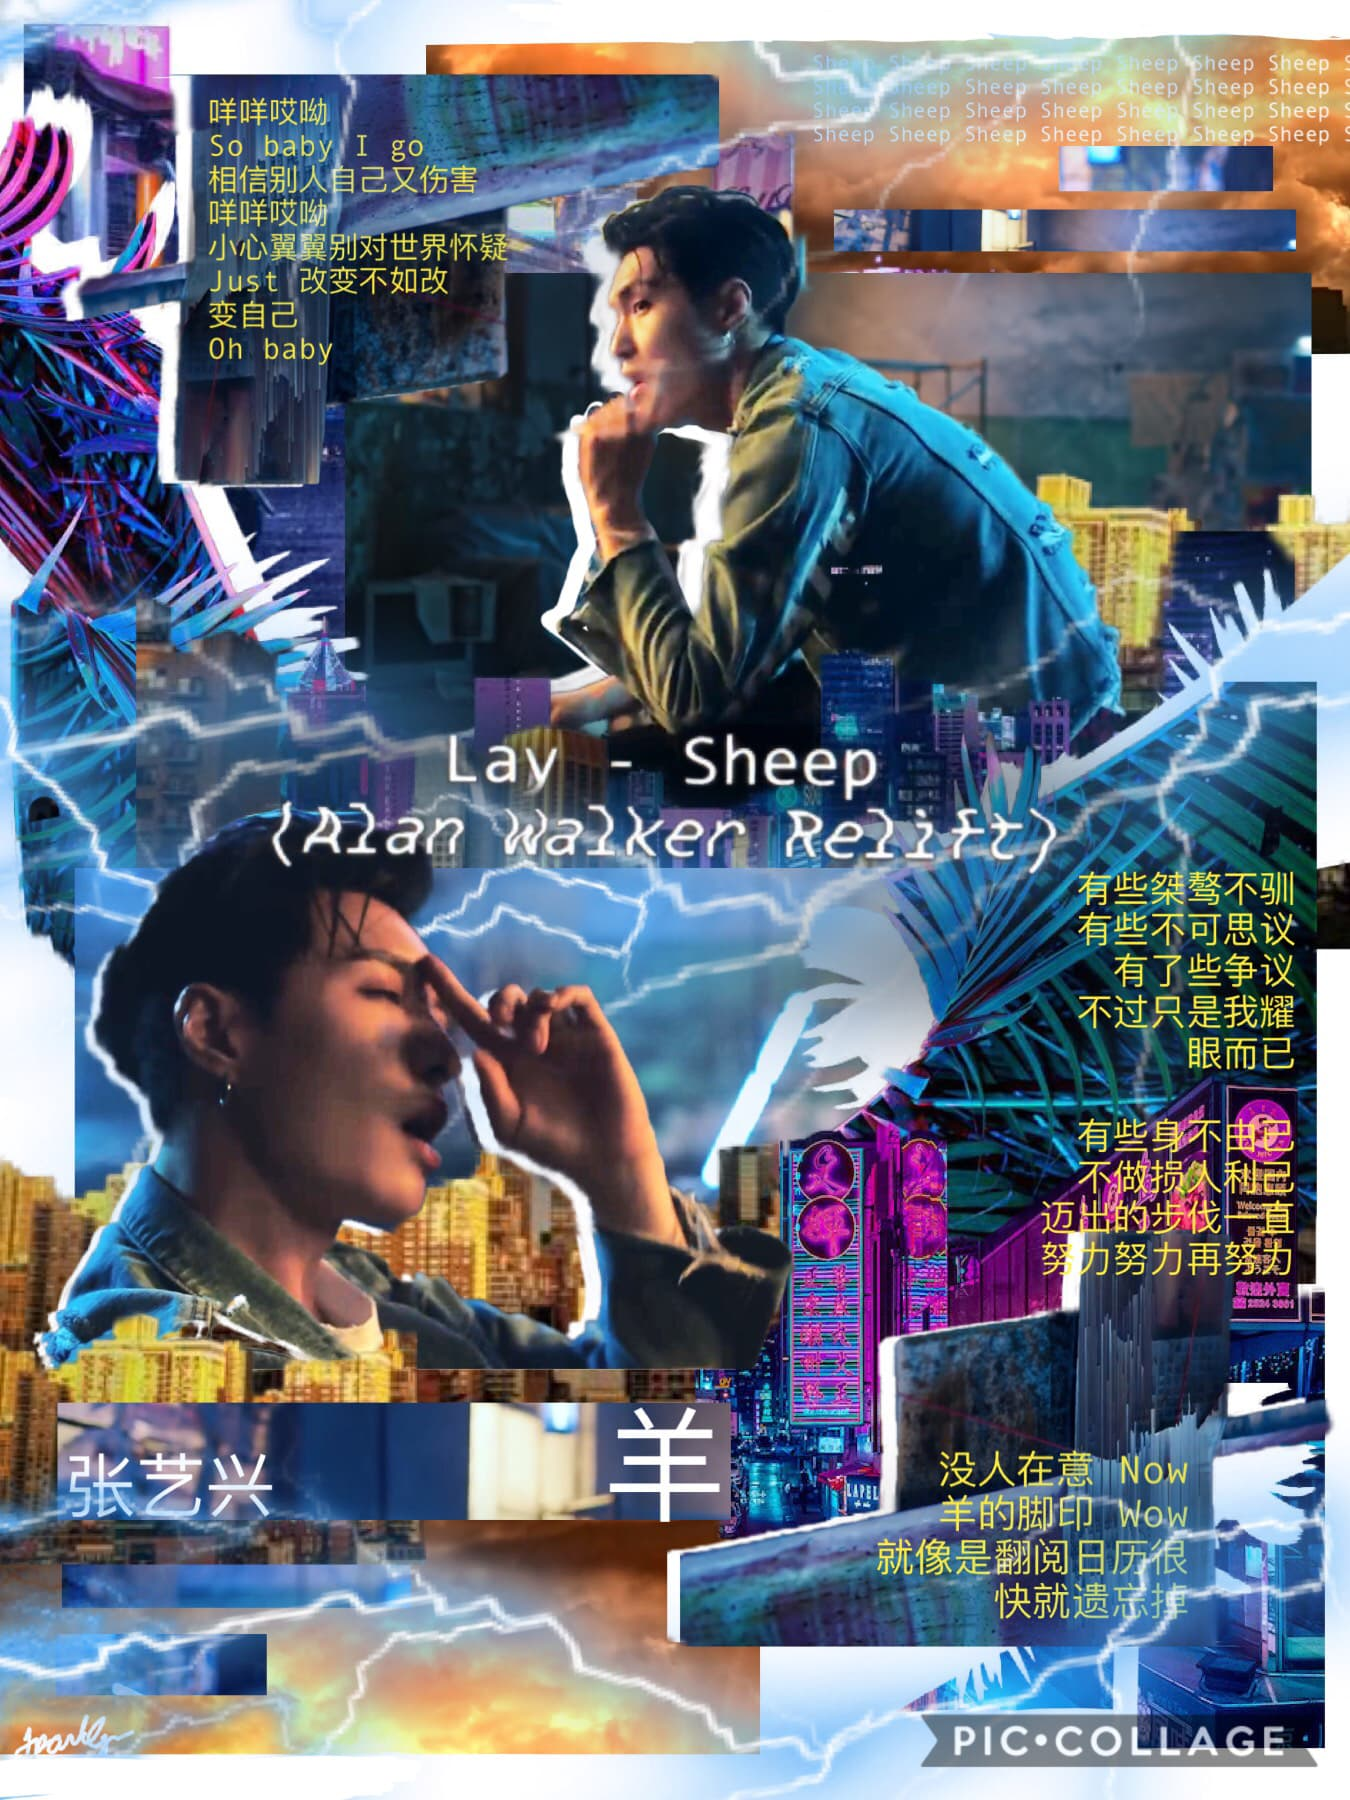 This took me FOREVER but it was worth it Relift or not, Lay slayed 🔥🔥🔥🔥